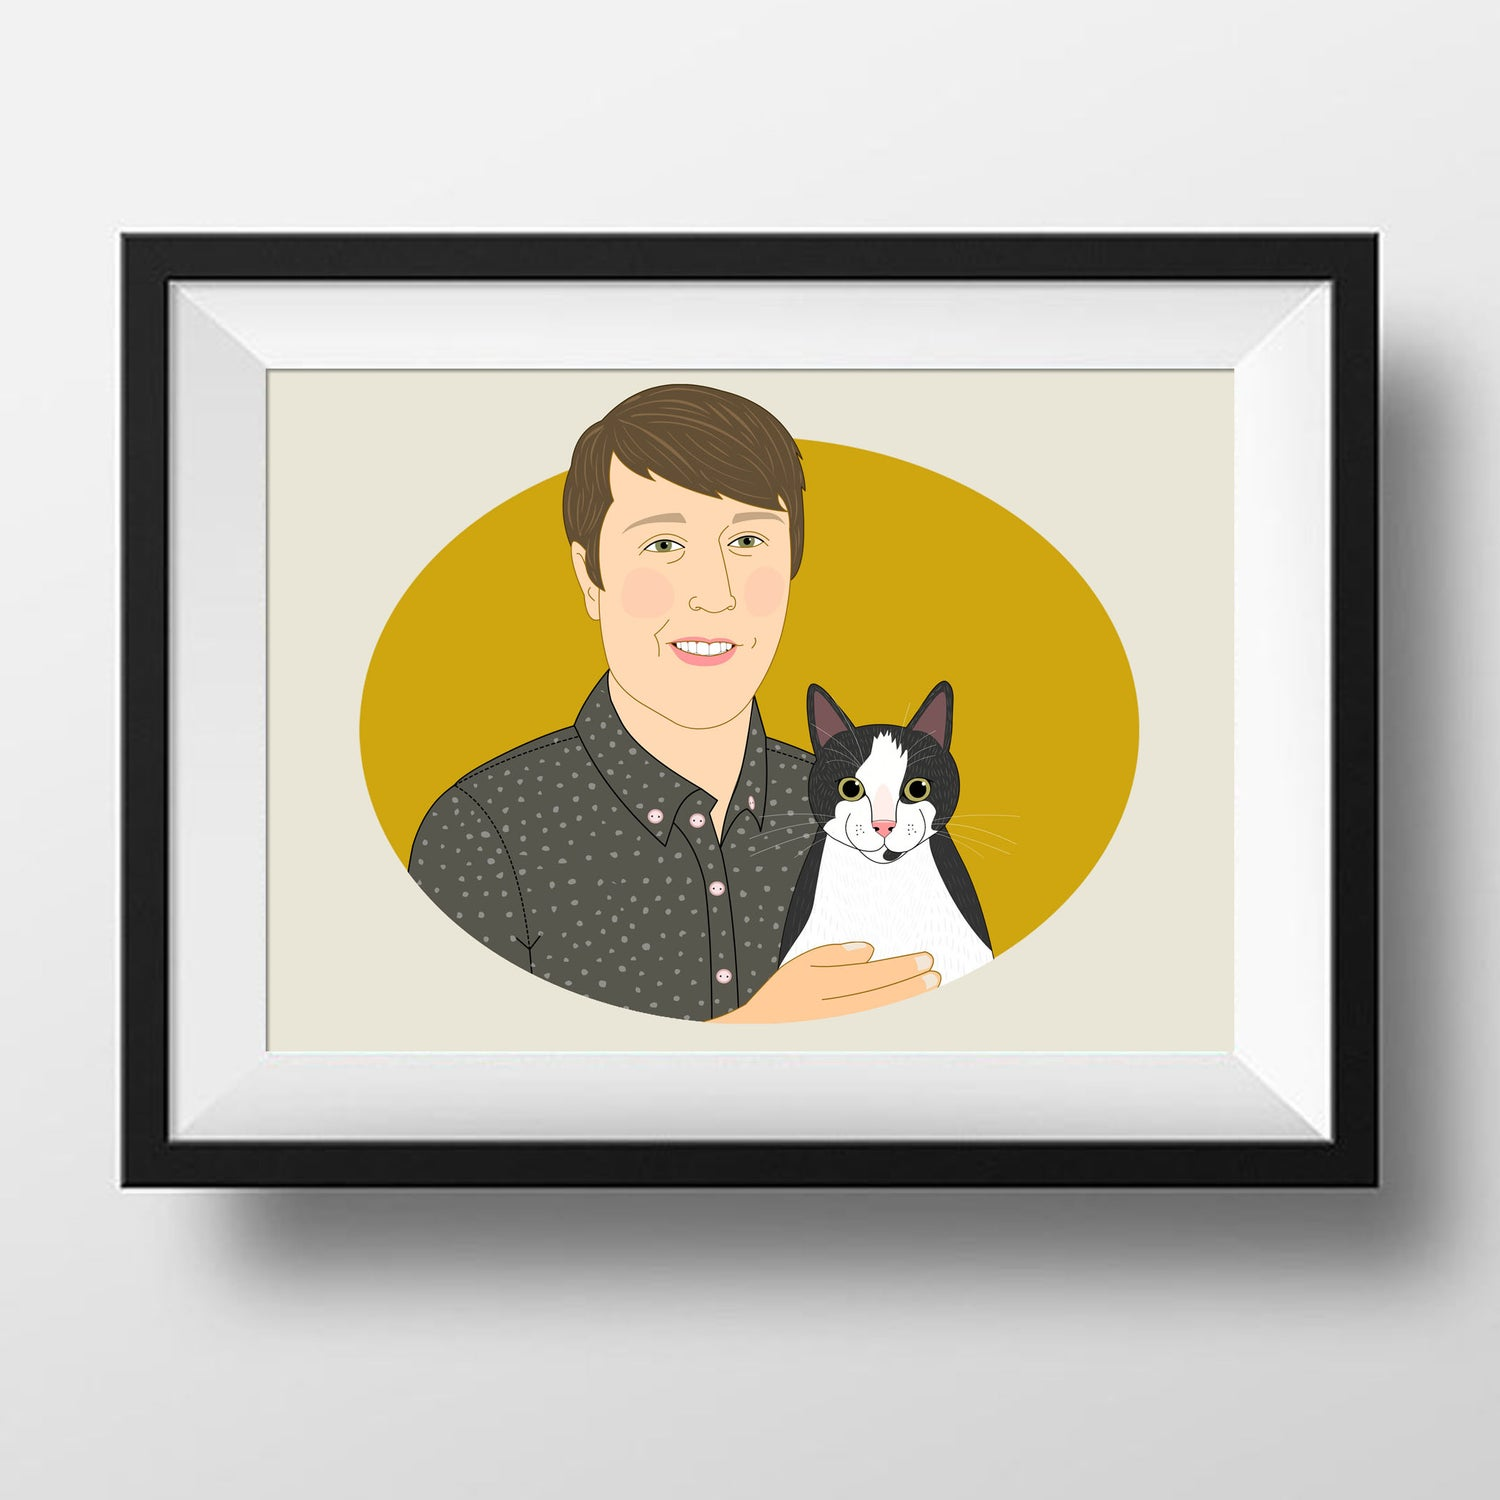 Image of Custom Portrait from photo. Portrait with pet, personalized illustration with dog or cat.